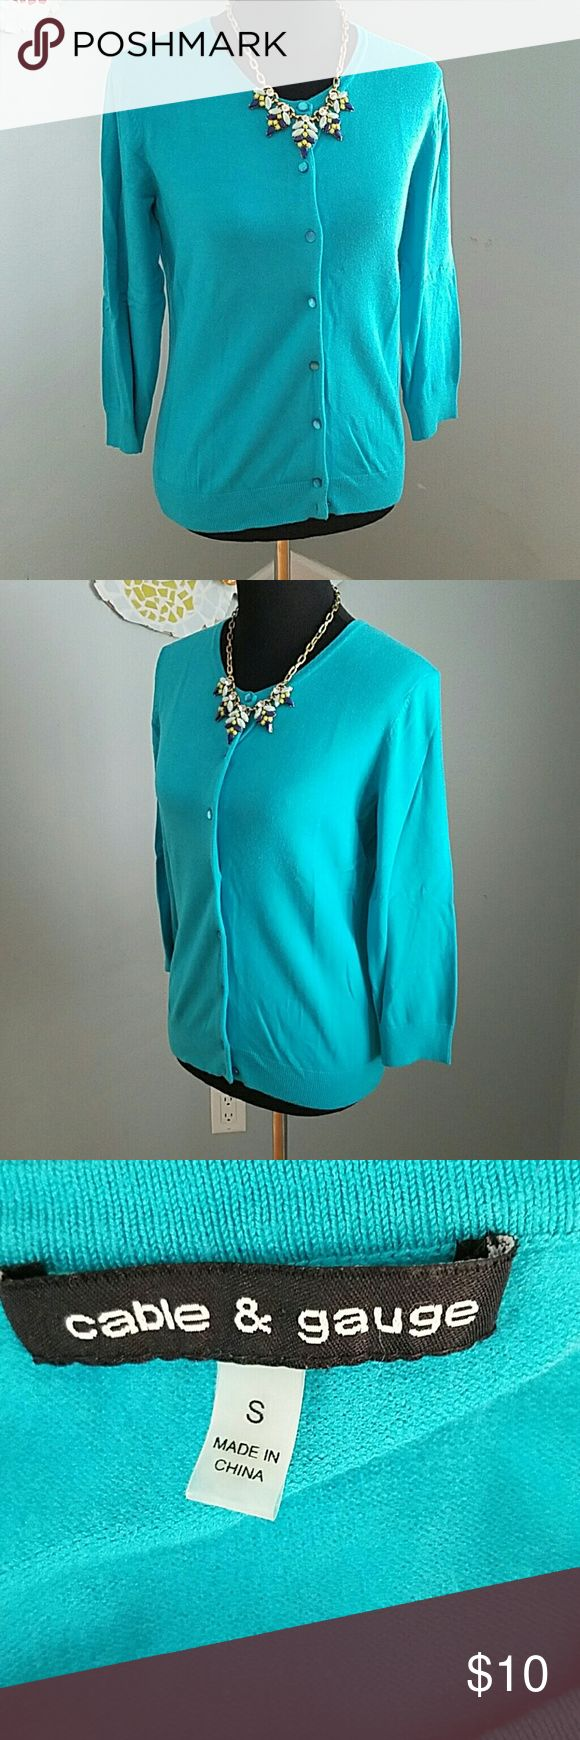 Cable & Gauge Turquoise Cardigan Gorgeous color! 3/4 length sleeves, plenty of stretch. 70% rayon, 30% nylon. In great used condition. Cable & Gauge Sweaters Cardigans